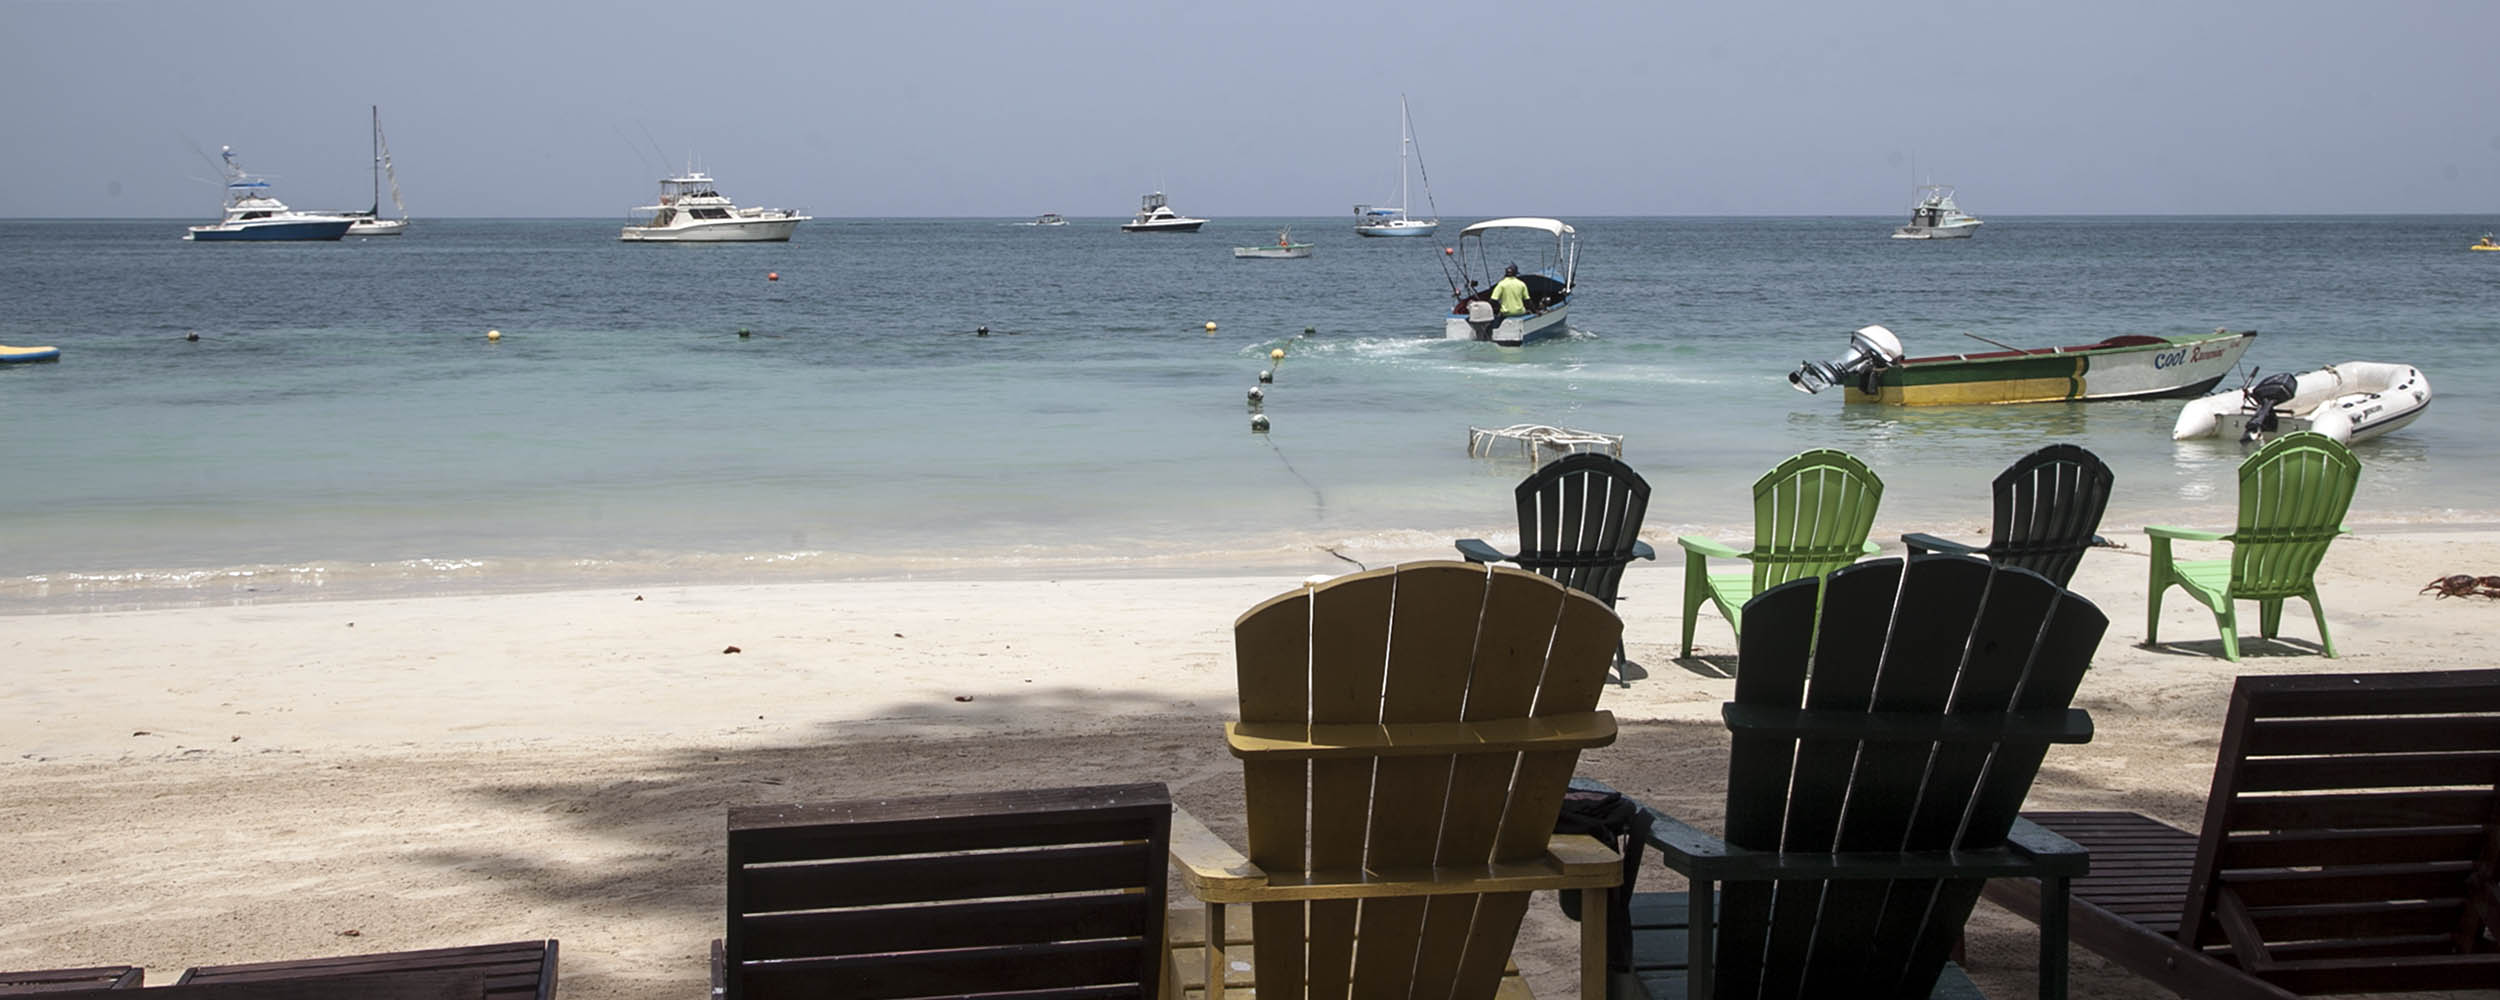 Ray's Water Sports - Negril Beach View, Negril Jamaica